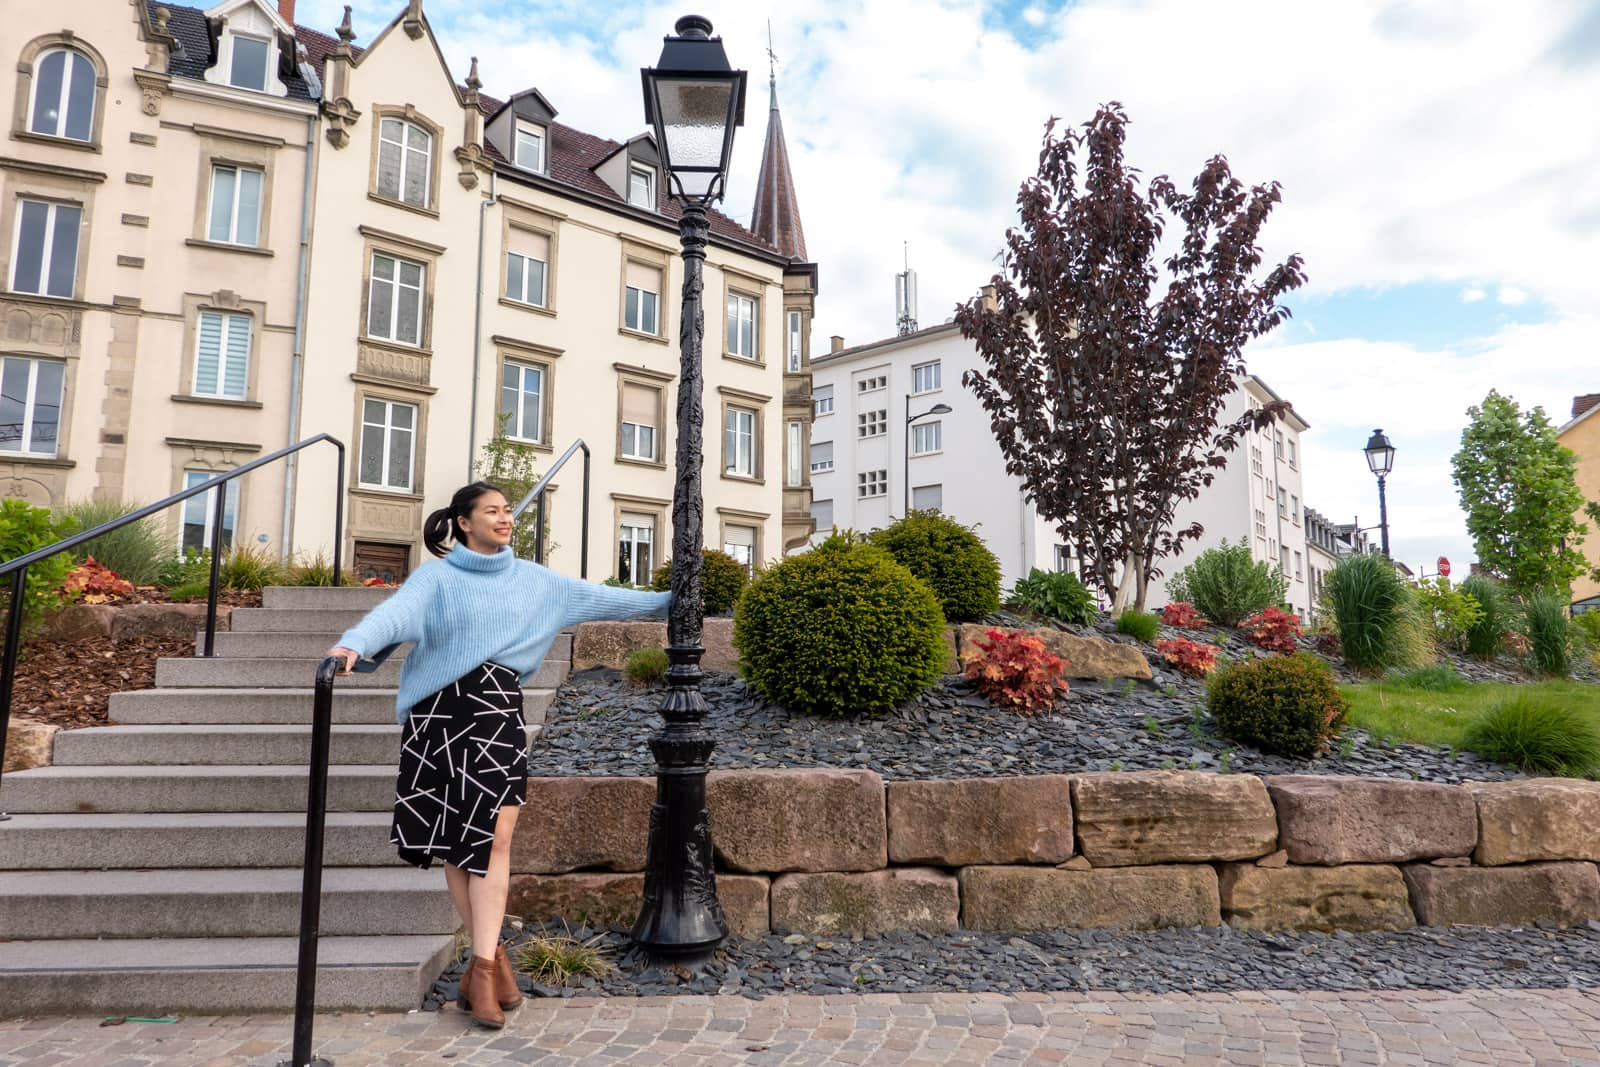 A woman in a blue sweater and a black and white patterned skirt, next to a set of stairs. She's holding onto a lamppost and in the background is a nice garden and some old buildings with tall windows